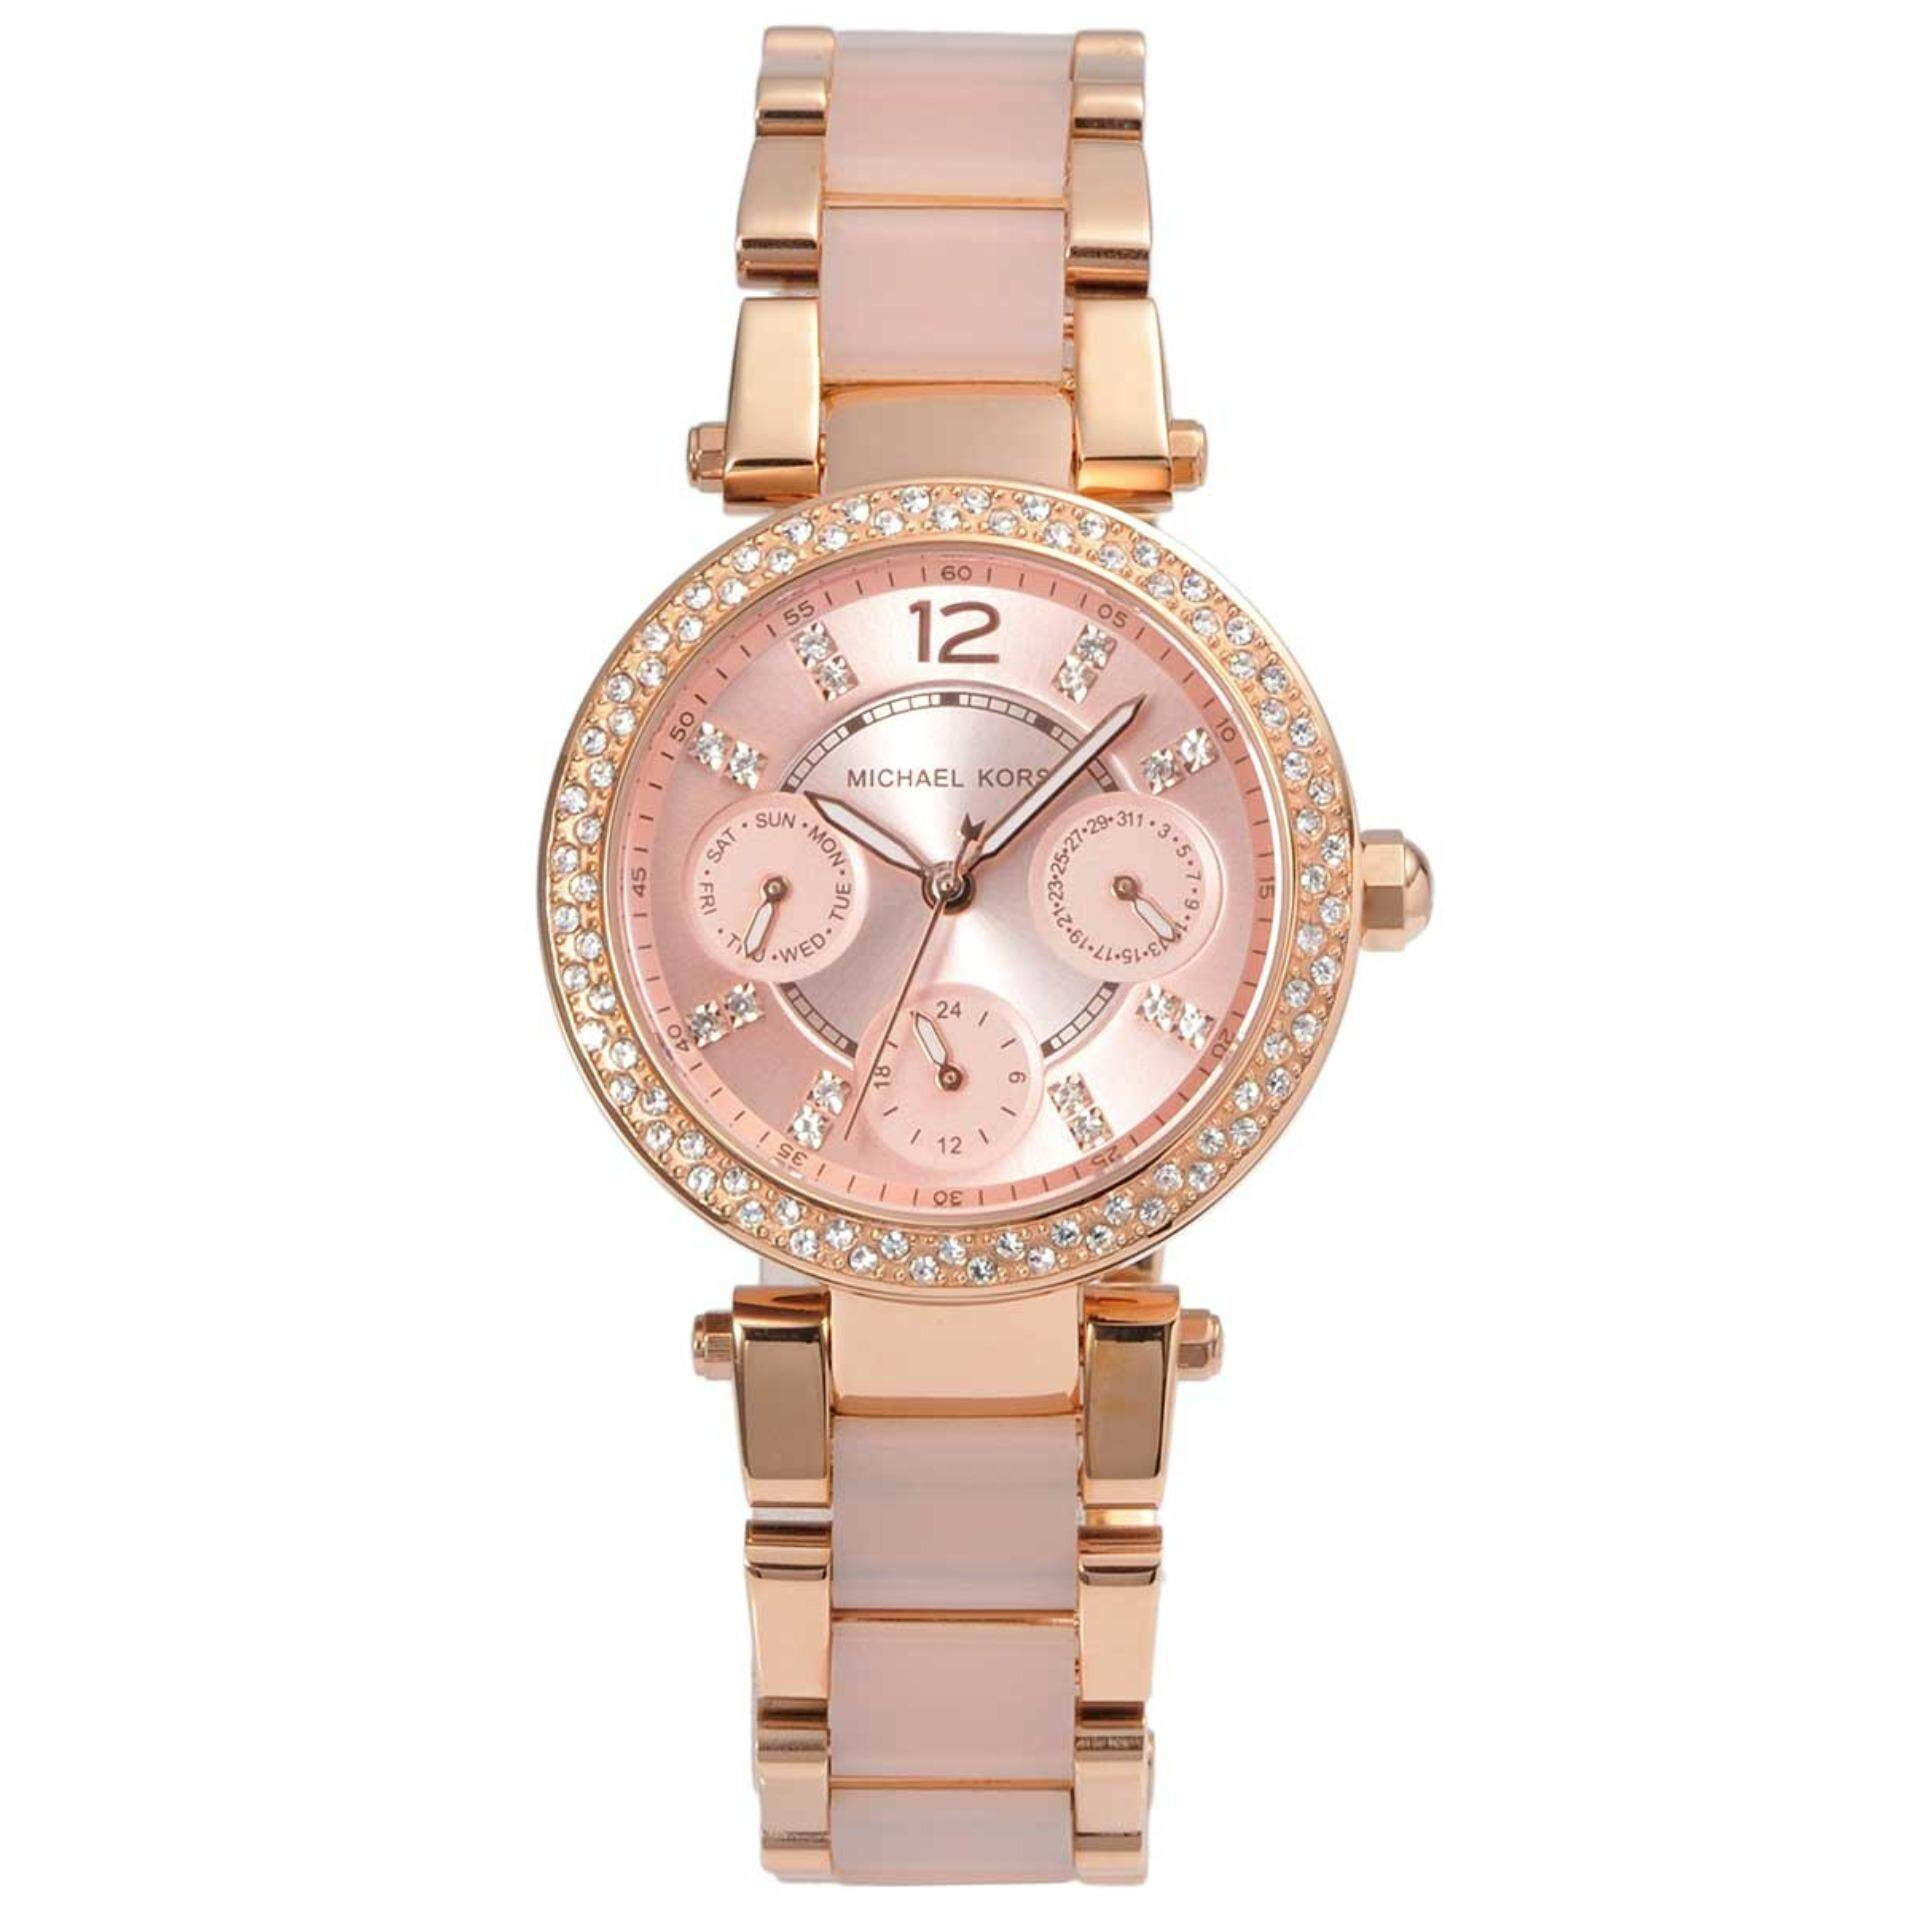 e2cc5031e7fd Michael Kors Watches price in Malaysia - Best Michael Kors Watches ...